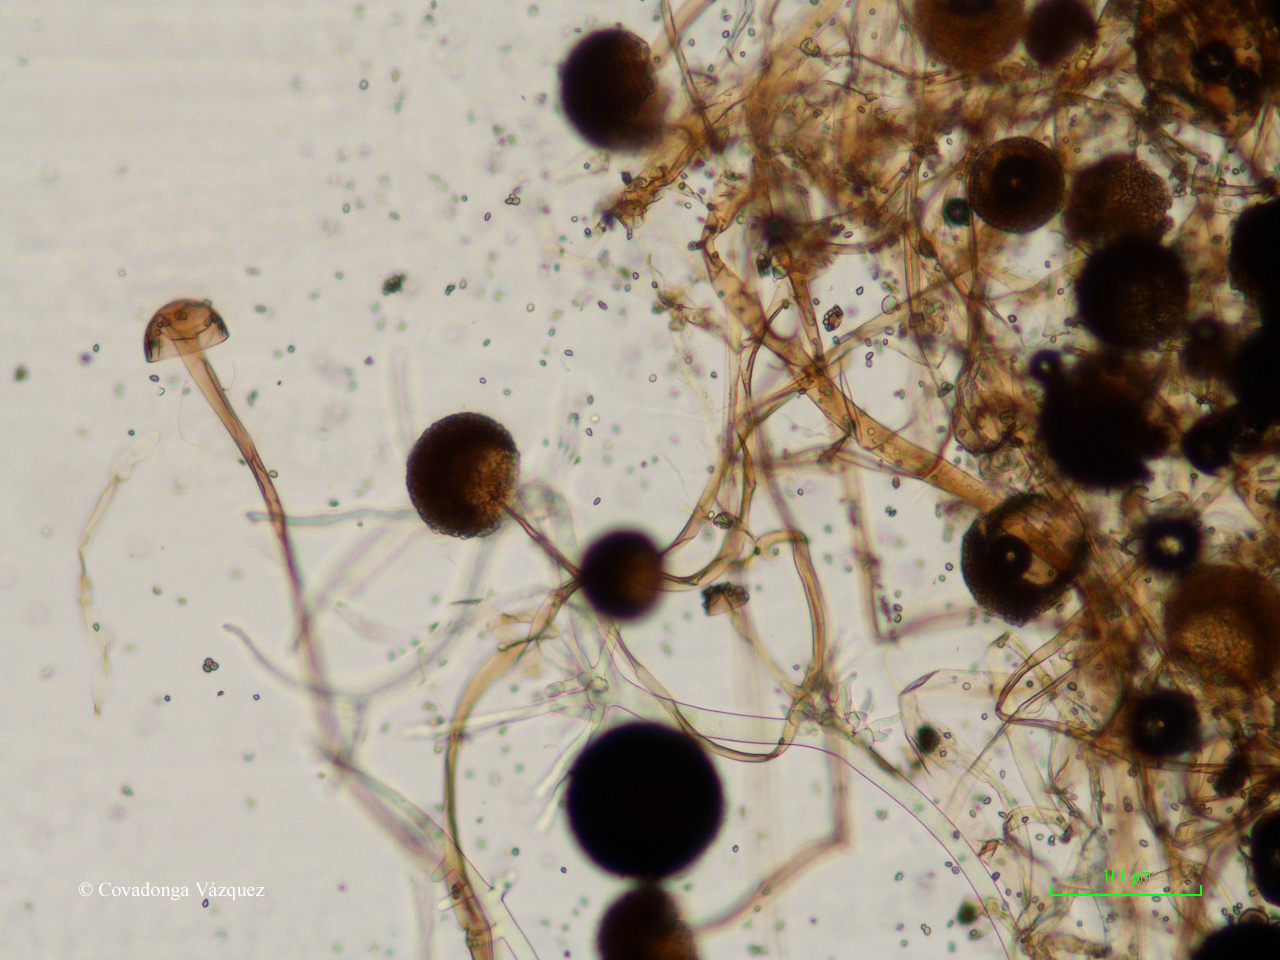 the fungus rhizopus stolonifer  nondestructive method to model the growth and discrimination of spoilage  fungi, like botrytis cinerea, rhizopus stolonifer and colletotrichum.